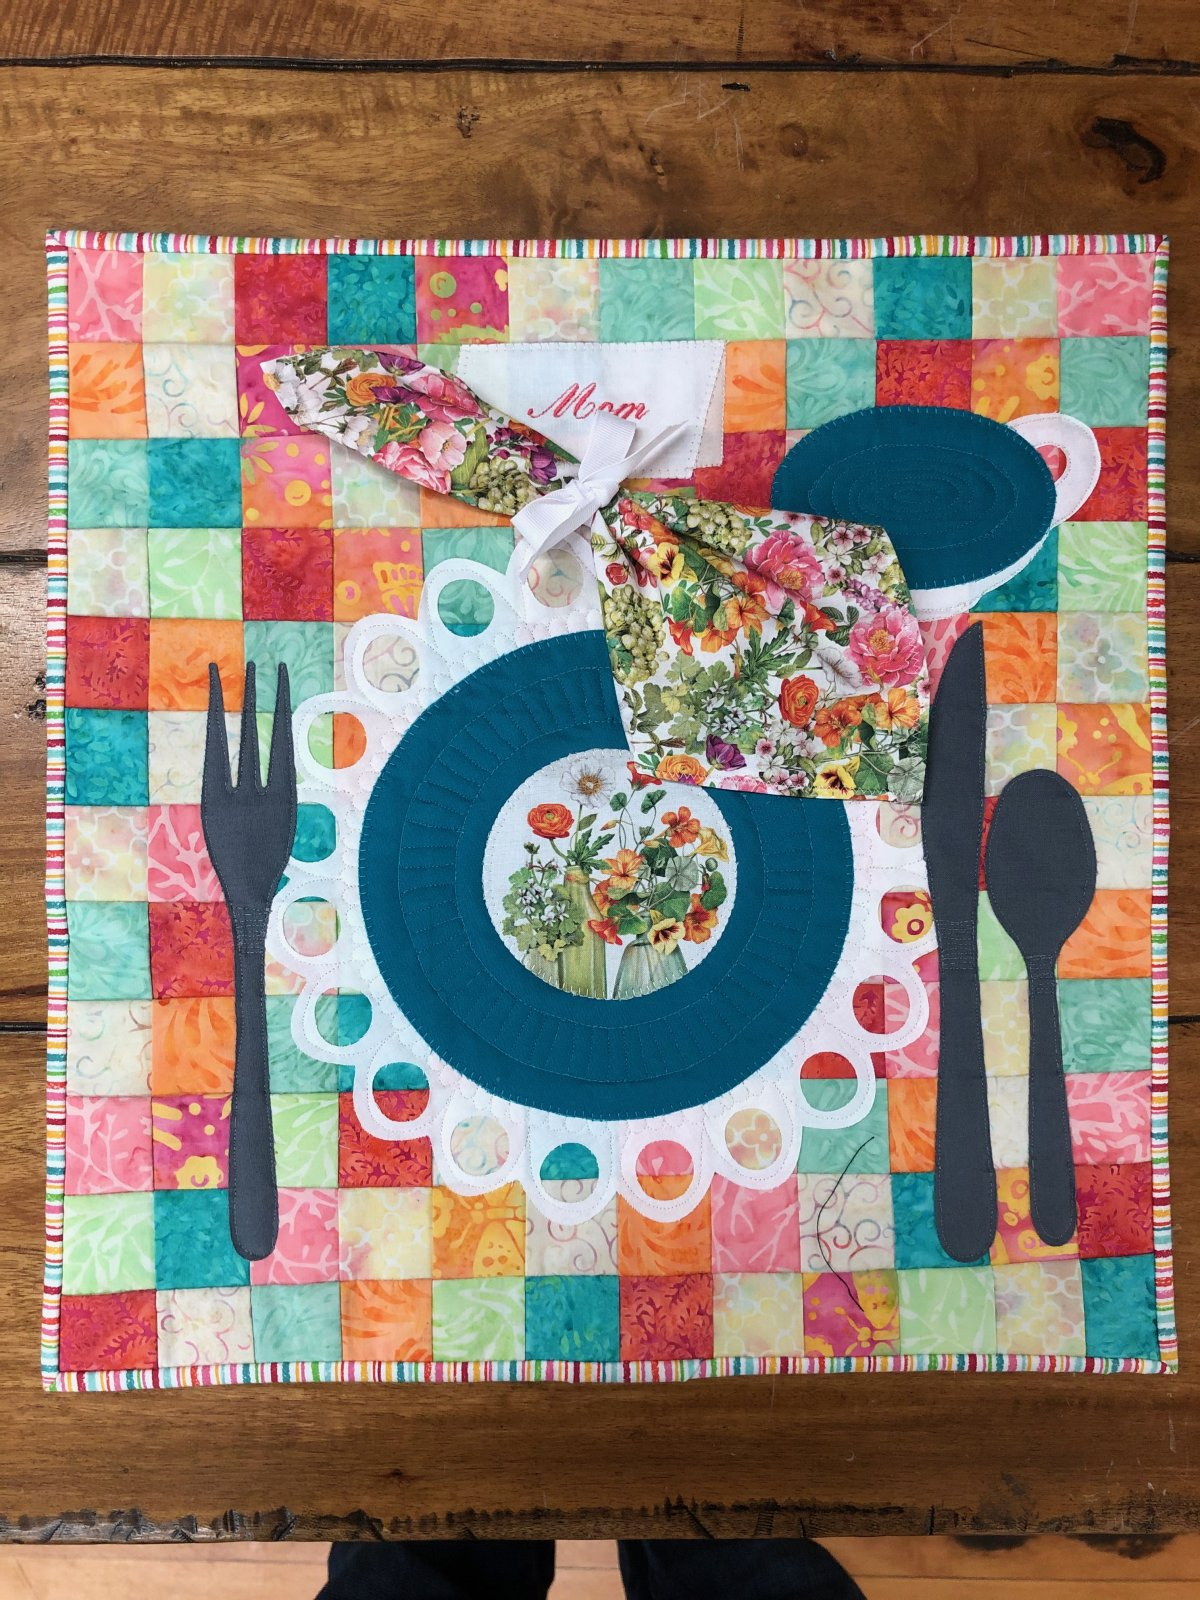 Find Your Place Quilt Kit - Row by Row 2019